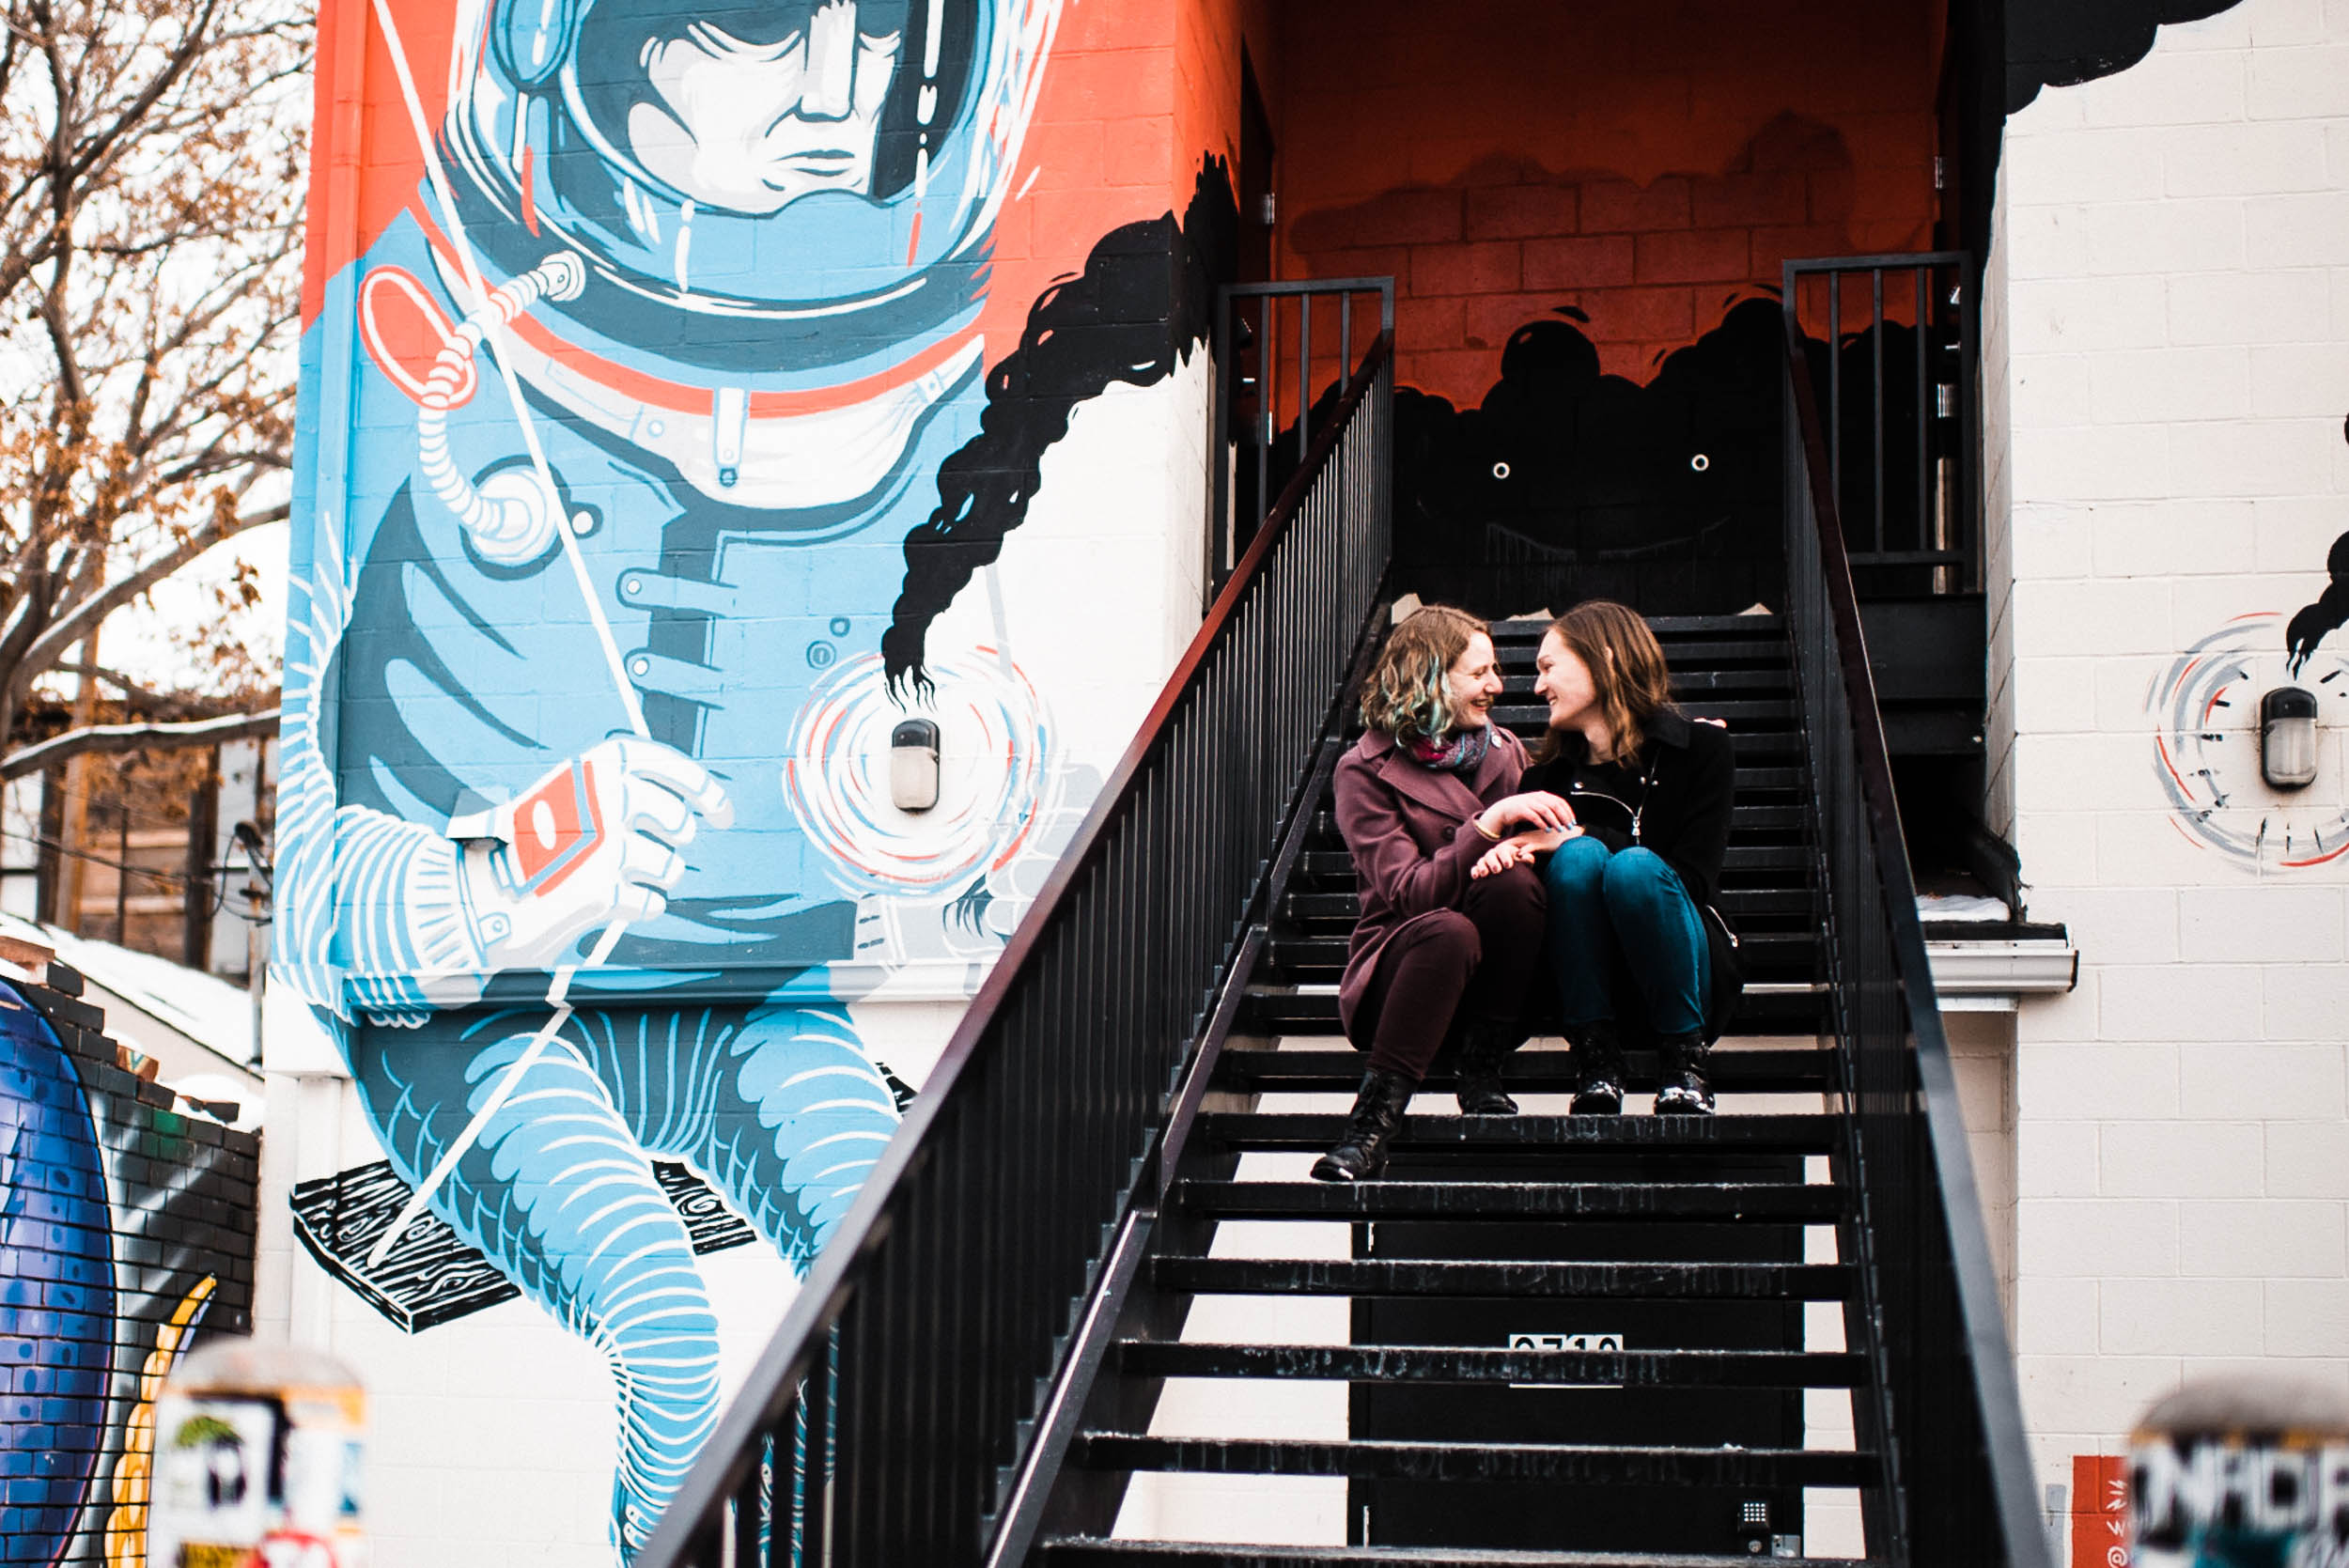 Same sex lesbian couple snuggling in a stairway in Denver Colorado RiNo art mural, RiNo Arts District, RiNo engagement session, LGBT wedding photographers, LGBT friendly wedding photographers, LGBT engagement photographers, Denver wedding photographers, Denver Engagement photographers